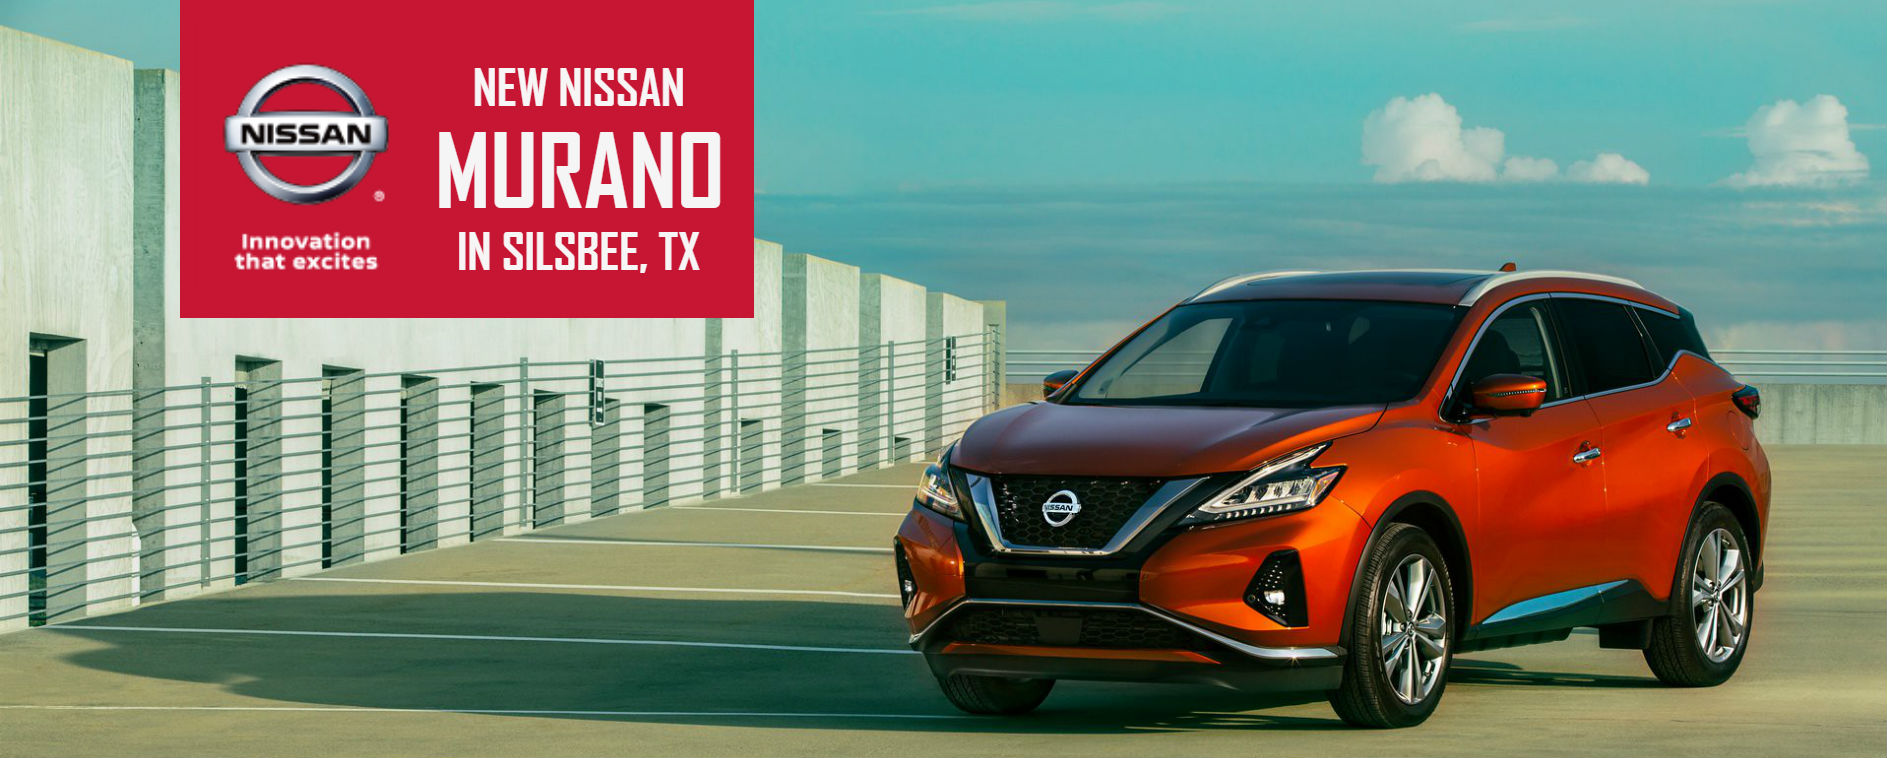 New Nissan Murano In Silsbee, TX